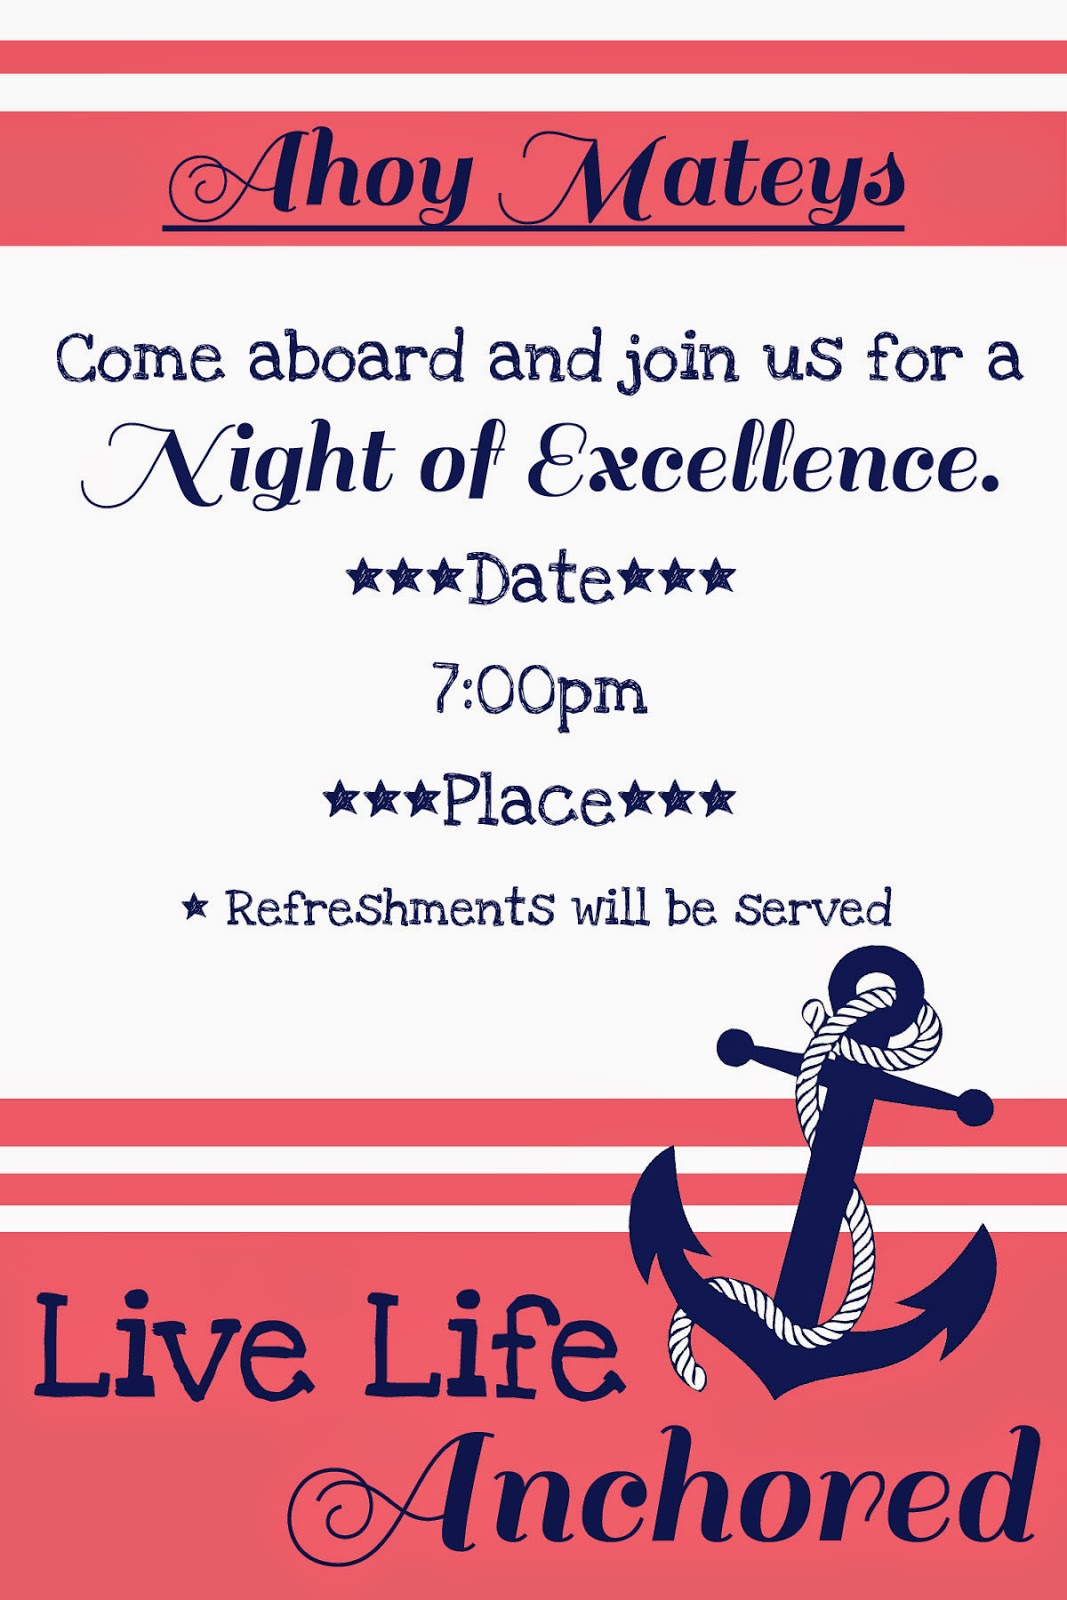 live life anchored night of excellence invitation eee.freetimefrolics.com